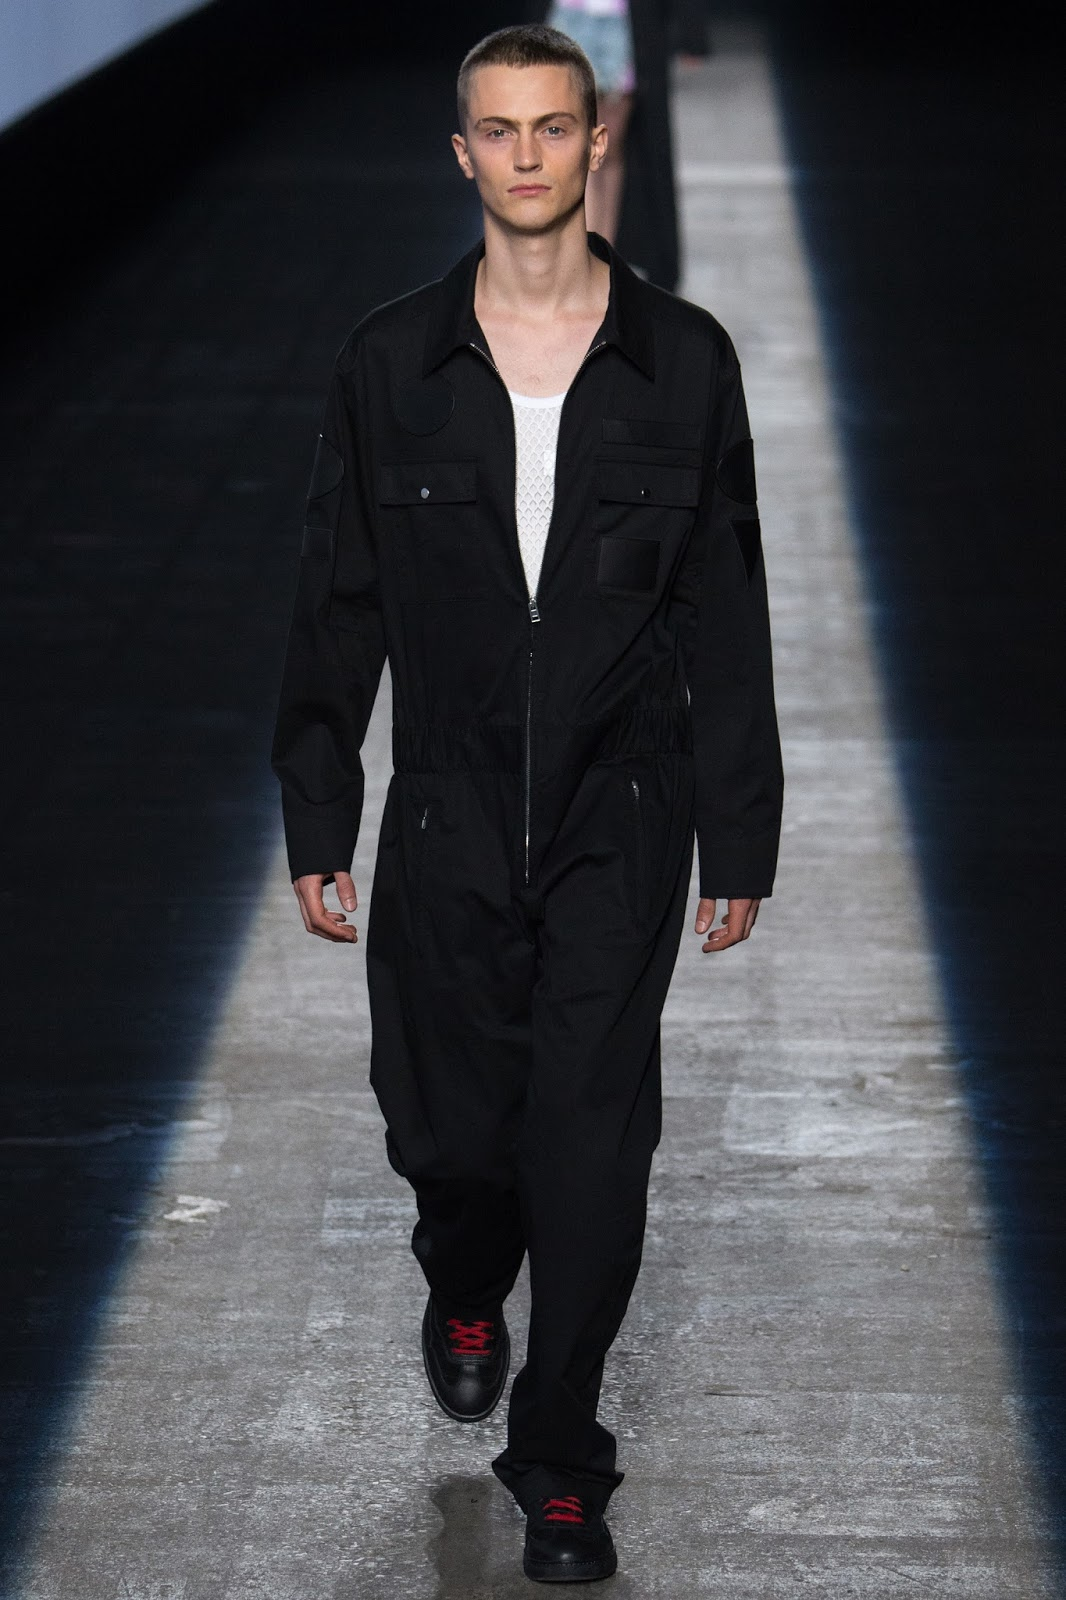 NYFW new york fashion week, black boiler suit streetwear menswear